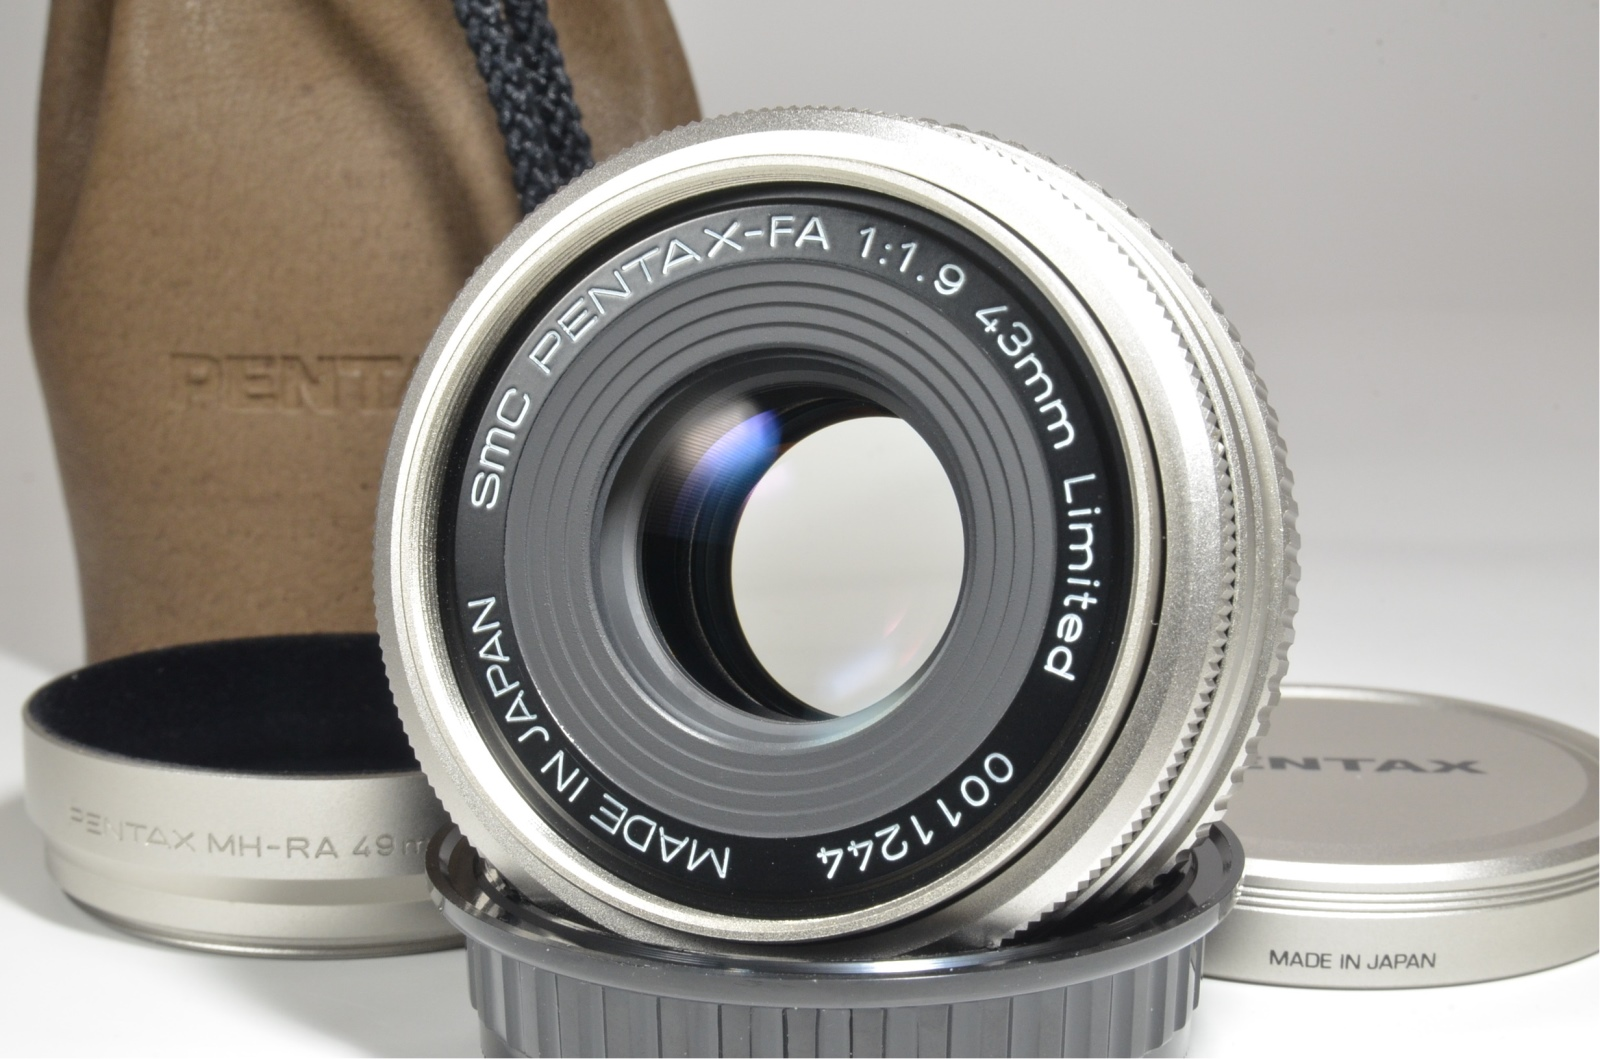 pentax smc fa 43mm f1.9 limited lens made in japan